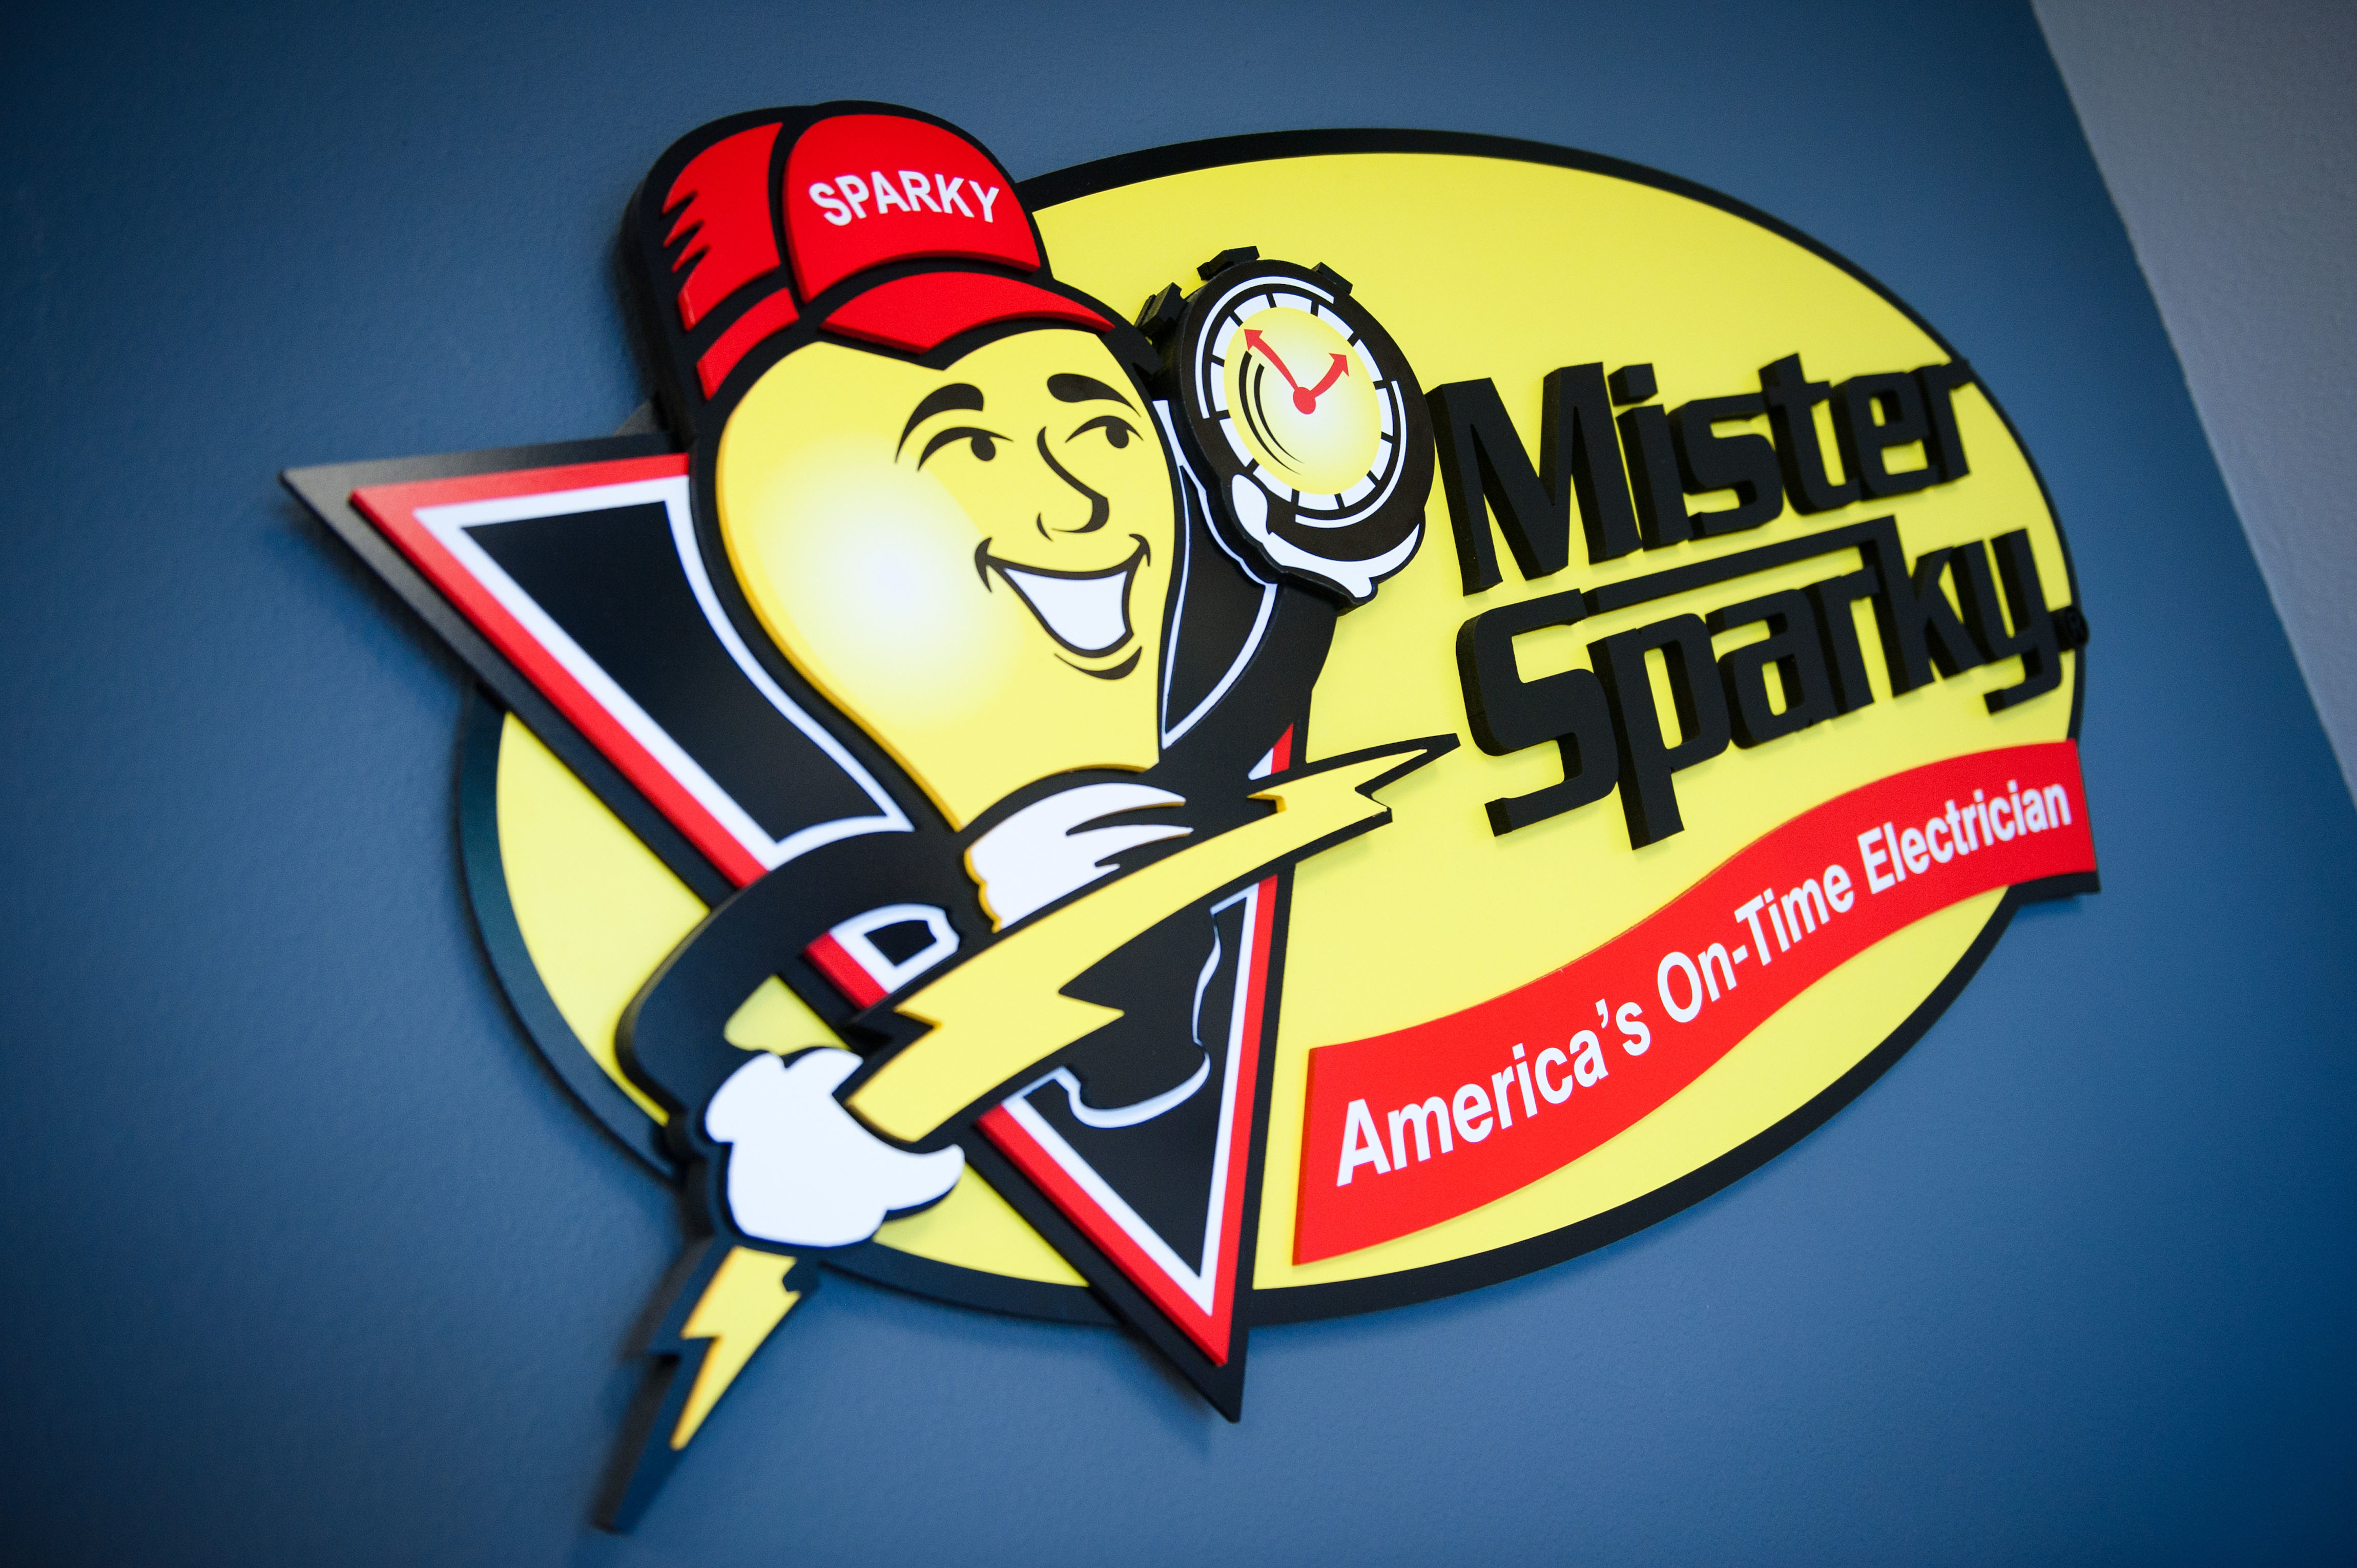 Mister Sparky Electrician Katy Coupons Katy Tx Near Me